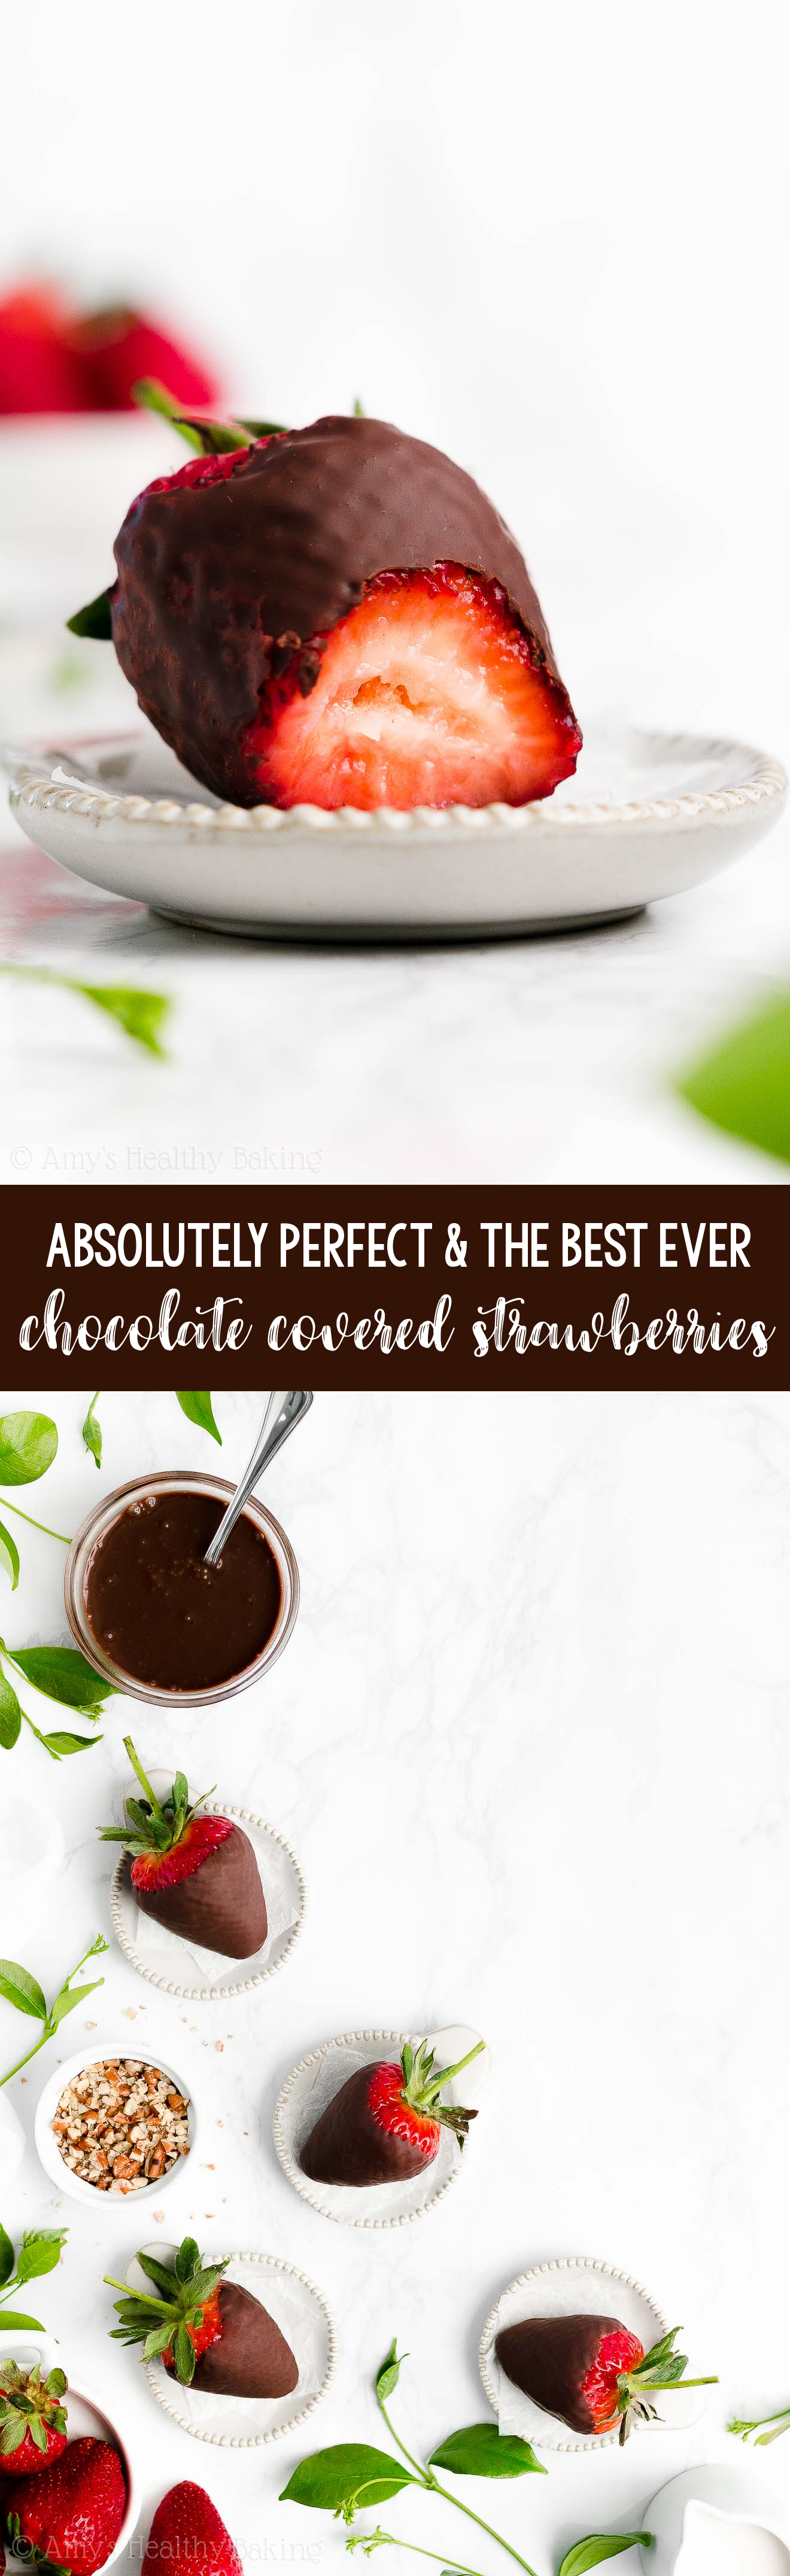 Perfect, BEST EVER Healthy Homemade DIY Vegan Dark Chocolate Covered Strawberries